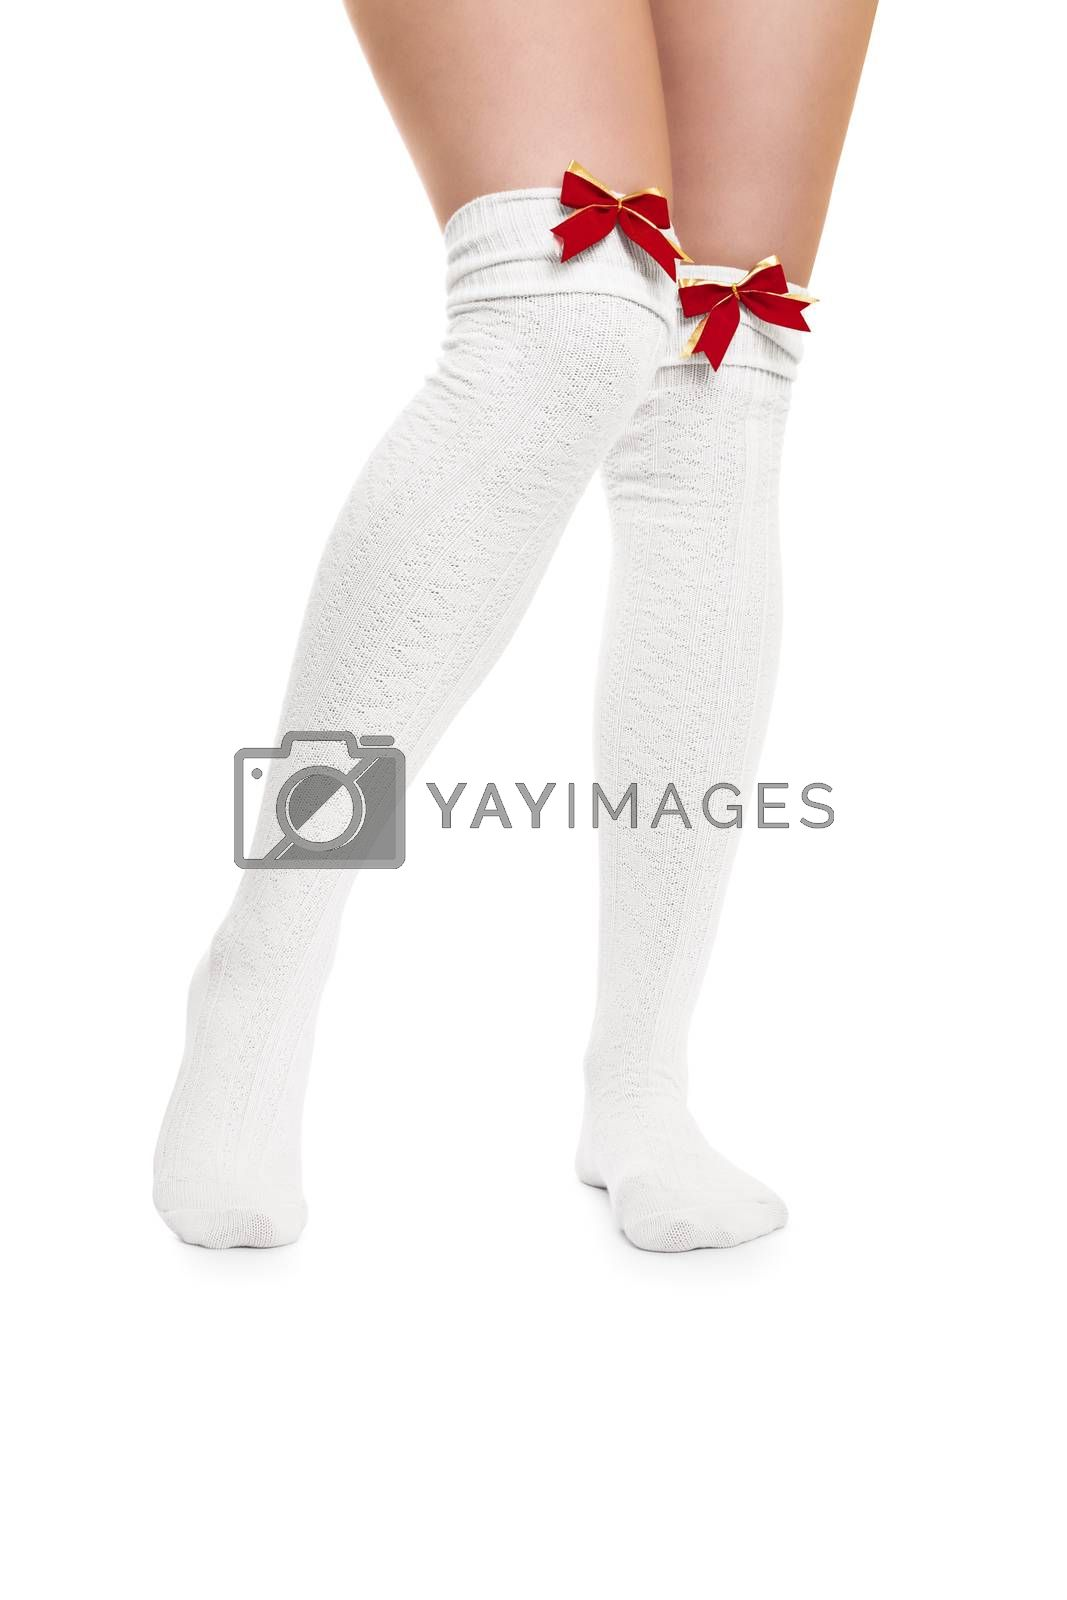 Sexy female legs in white stockings with red bow ties, isolated on white background.